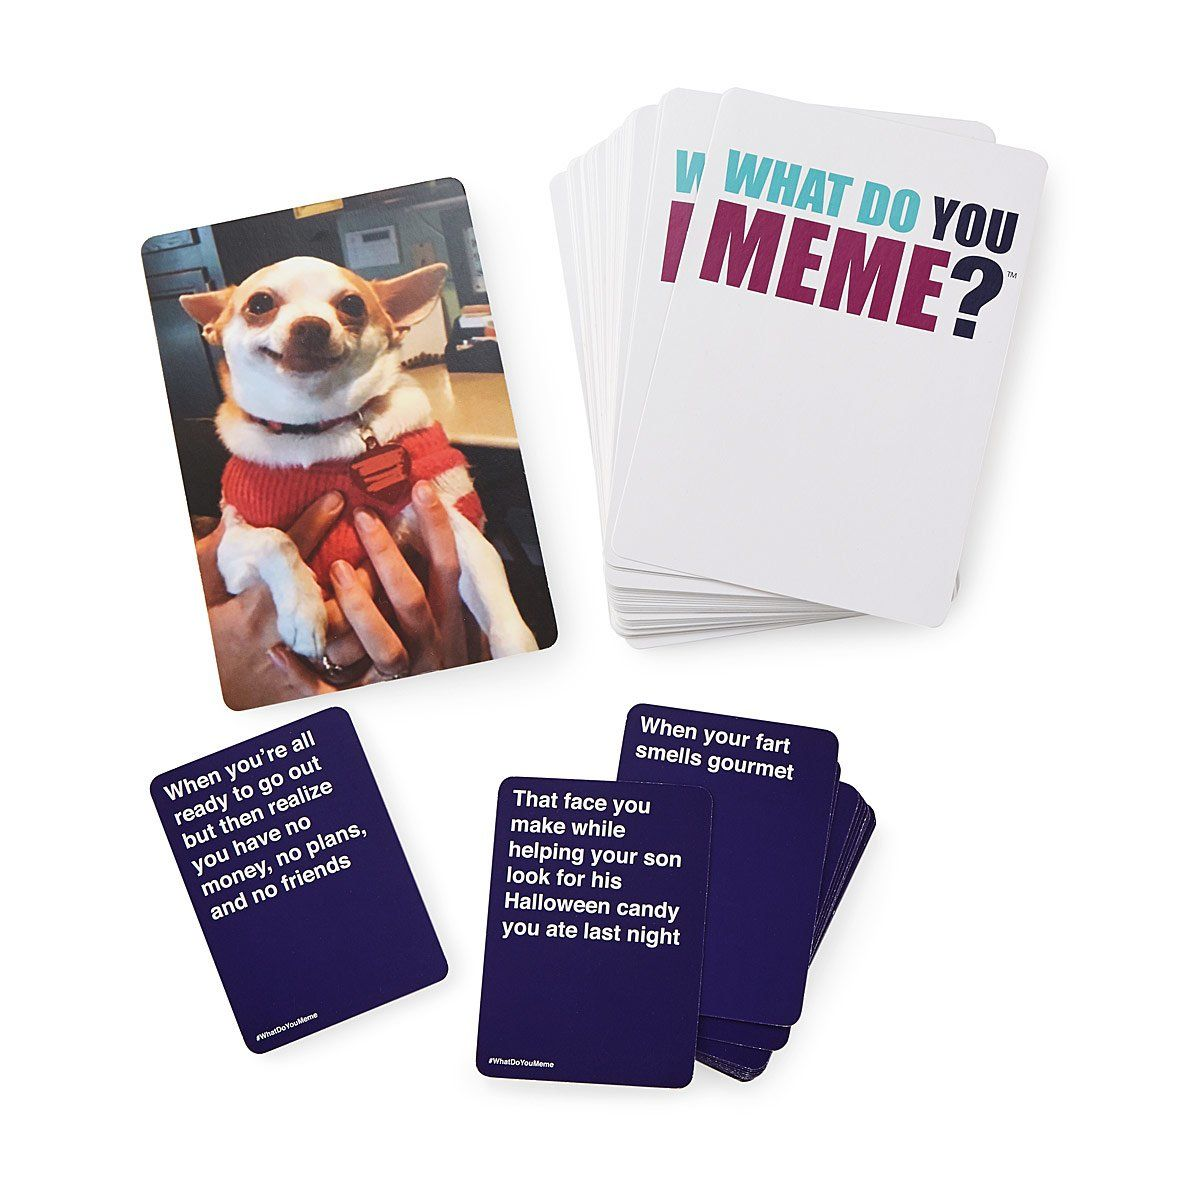 What Do You Meme Game Party Games Game Night Party Gifts Romantic Gifts For Him Thoughtful Gifts For Him What Do You Meme